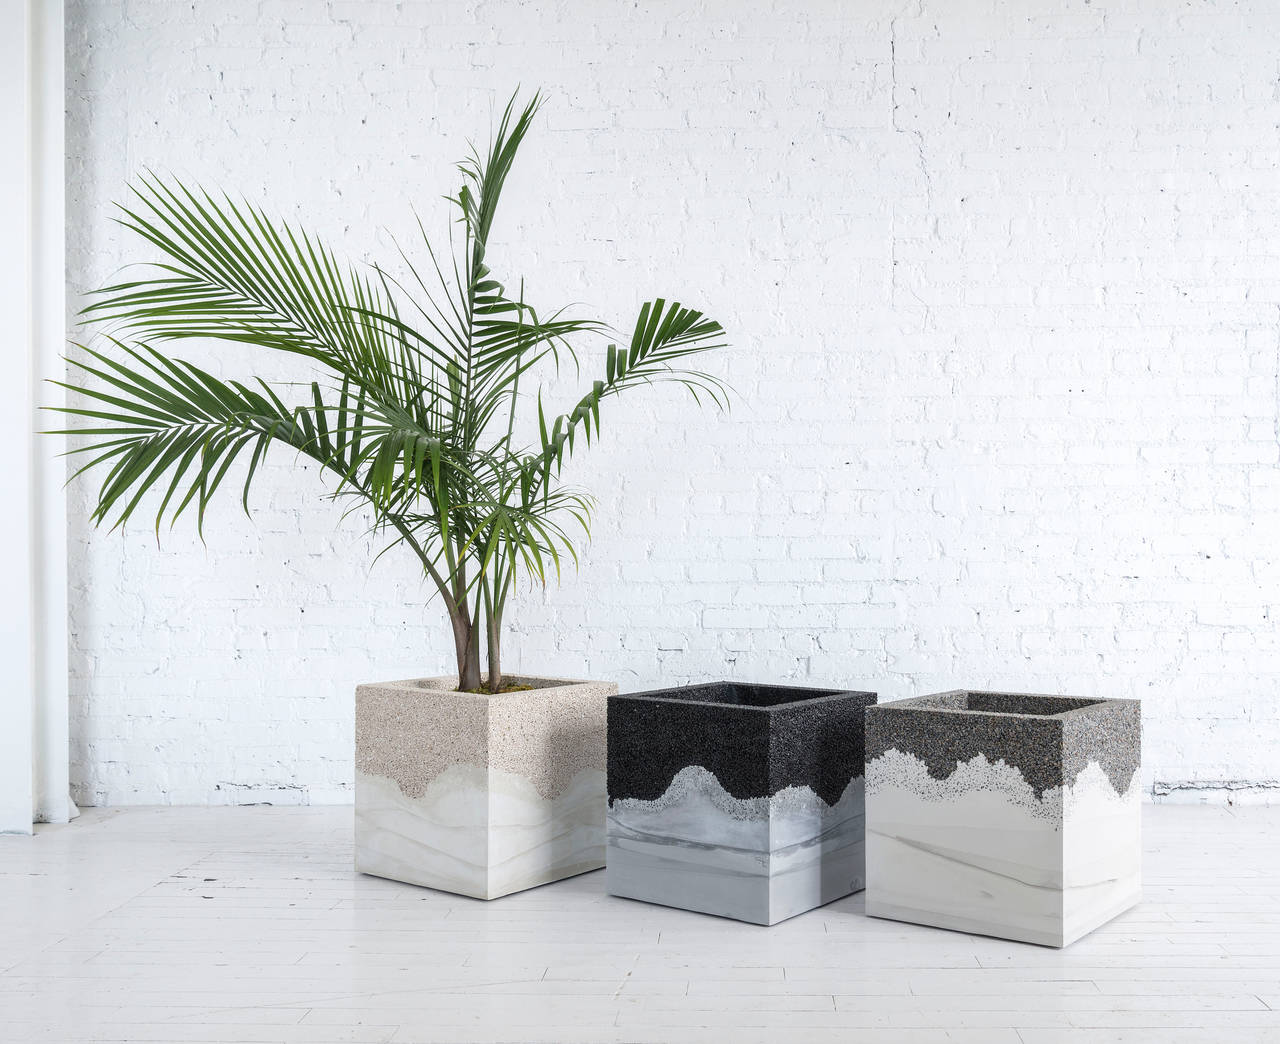 Crushed Porcelain and Cement Planter by Fernando Mastrangelo 2